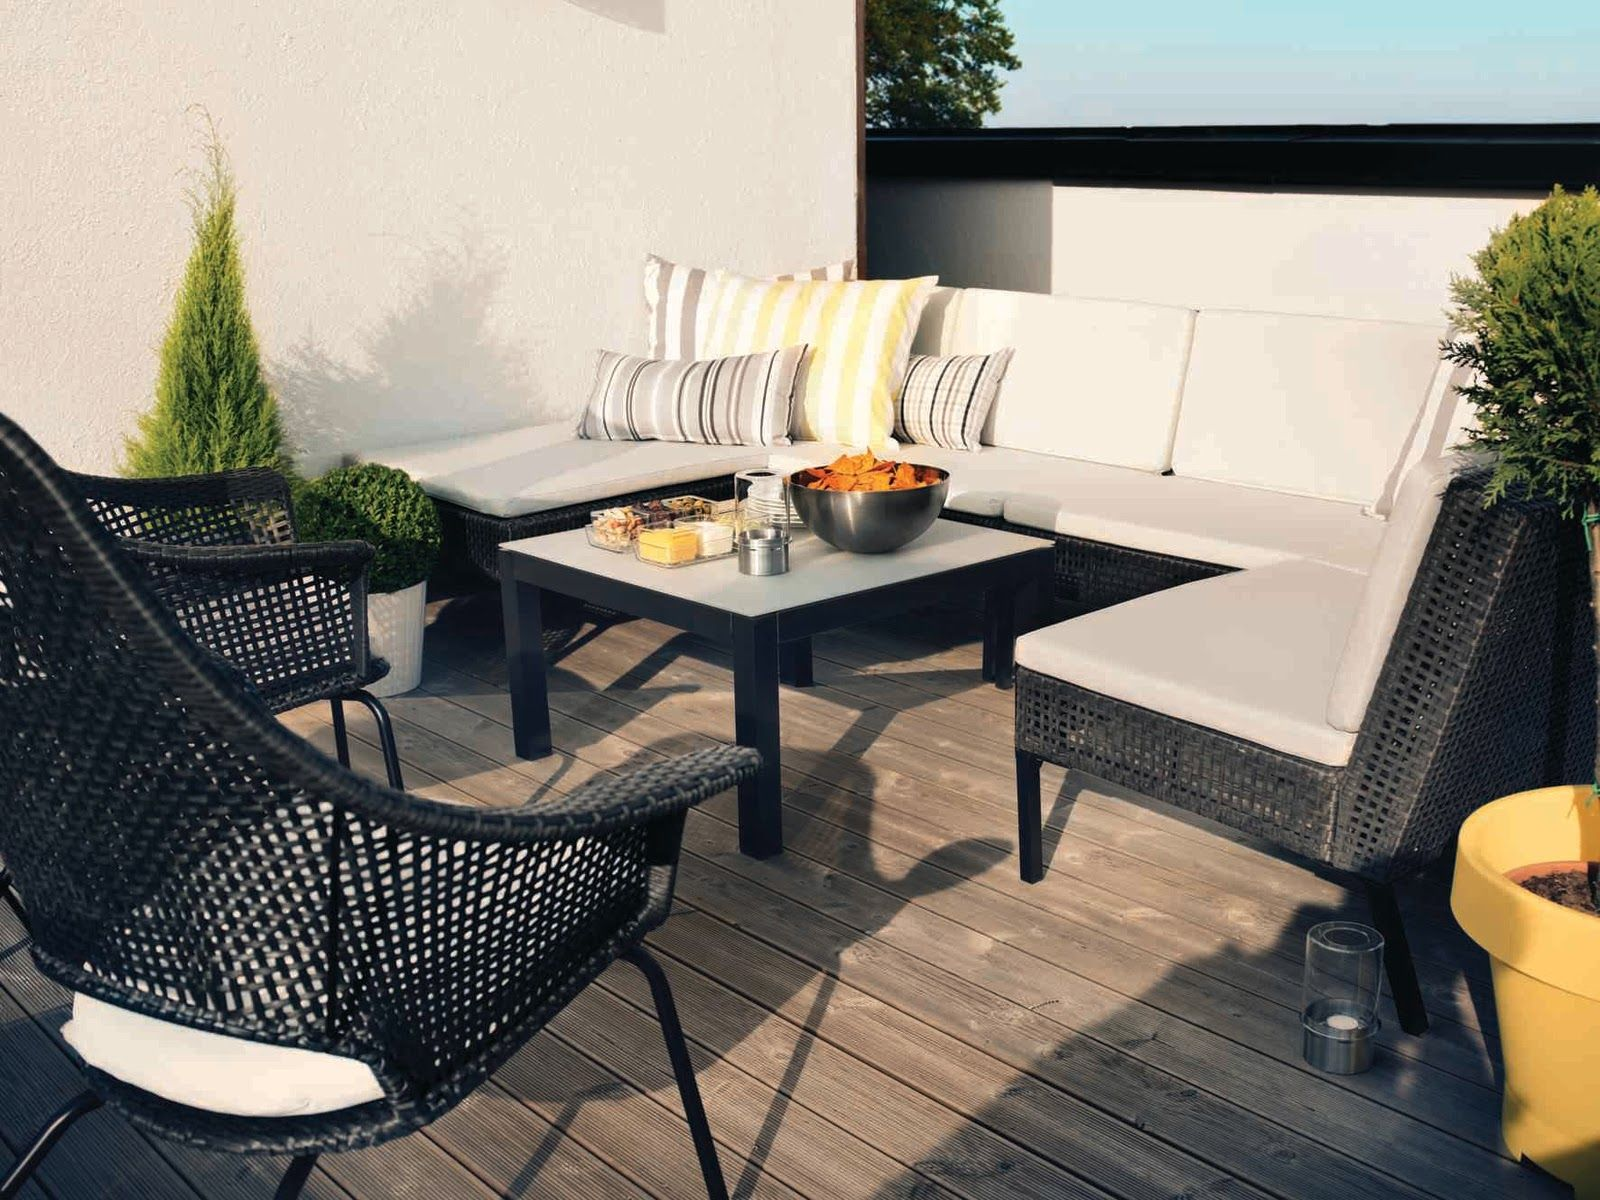 Balcony furniture ikea - Ikea Ammero For Deck Off Dining Room